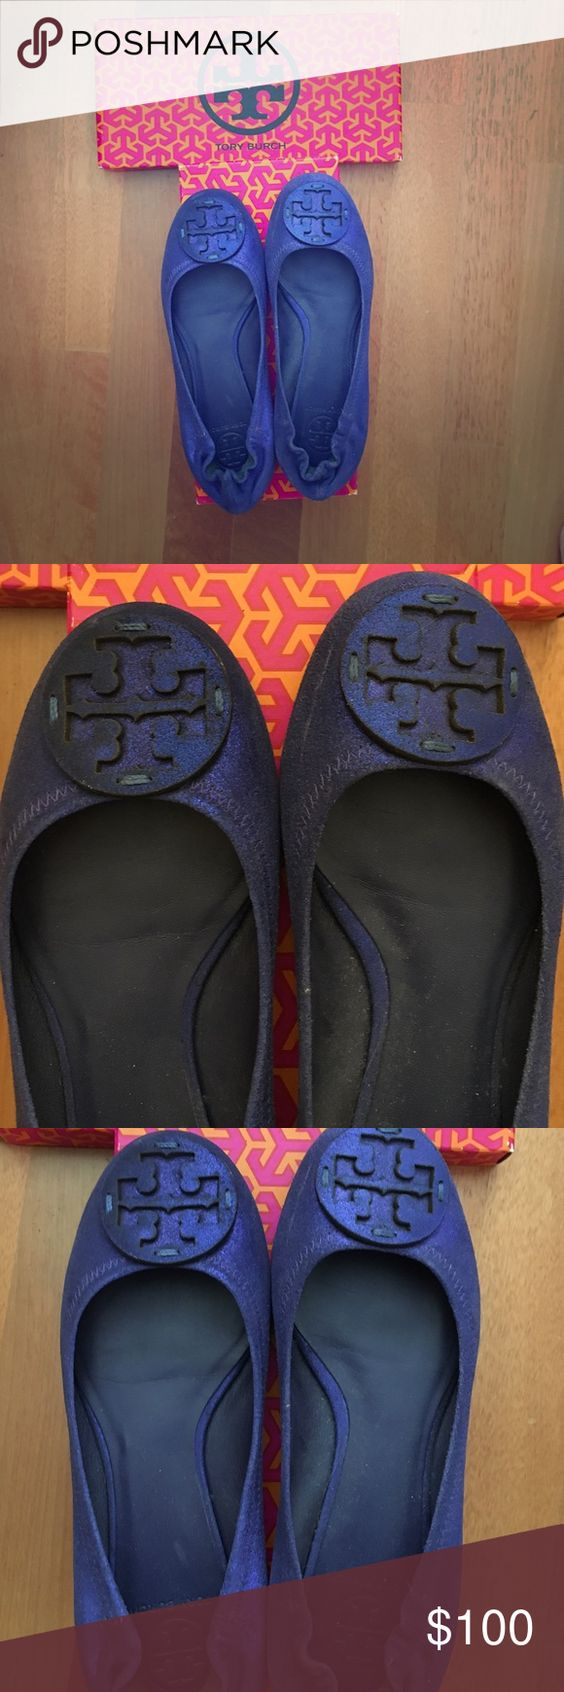 Tory Burch blue flats Flats been worn once or twice, willing to negotiate Tory Burch Shoes Flats & Loafers